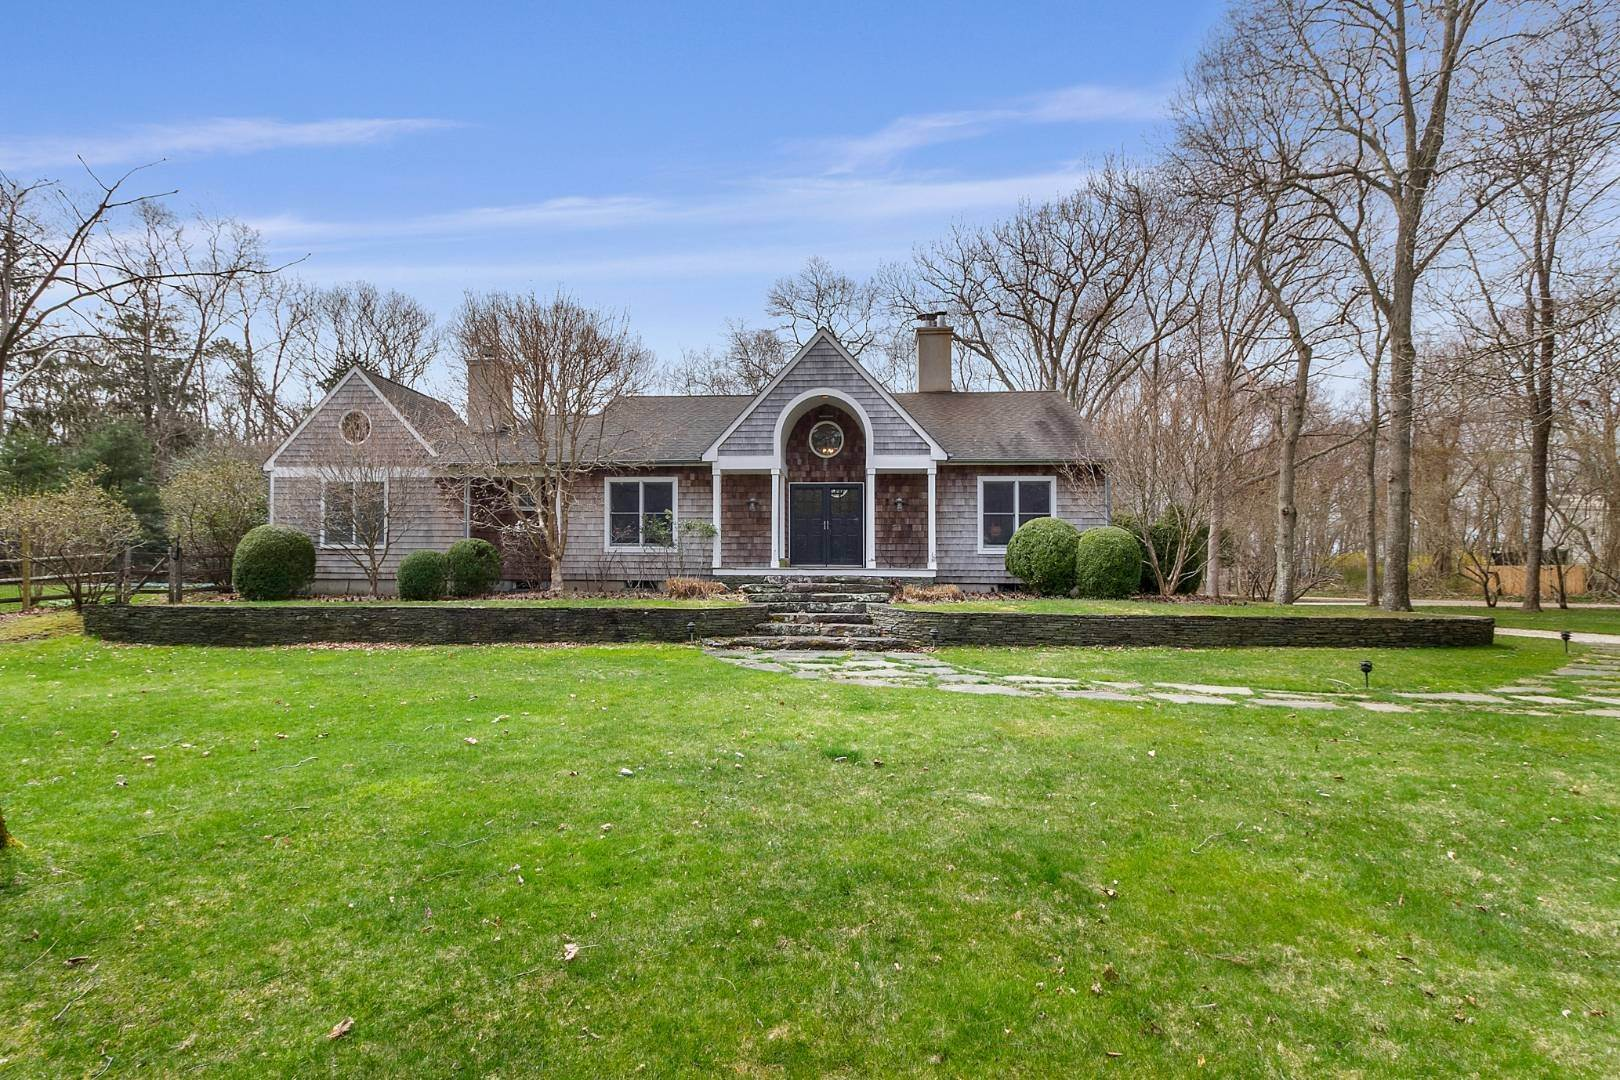 2. Single Family Home for Sale at Historic Springs Two-House Compound 104 Old Stone Hwy, East Hampton, NY 11937